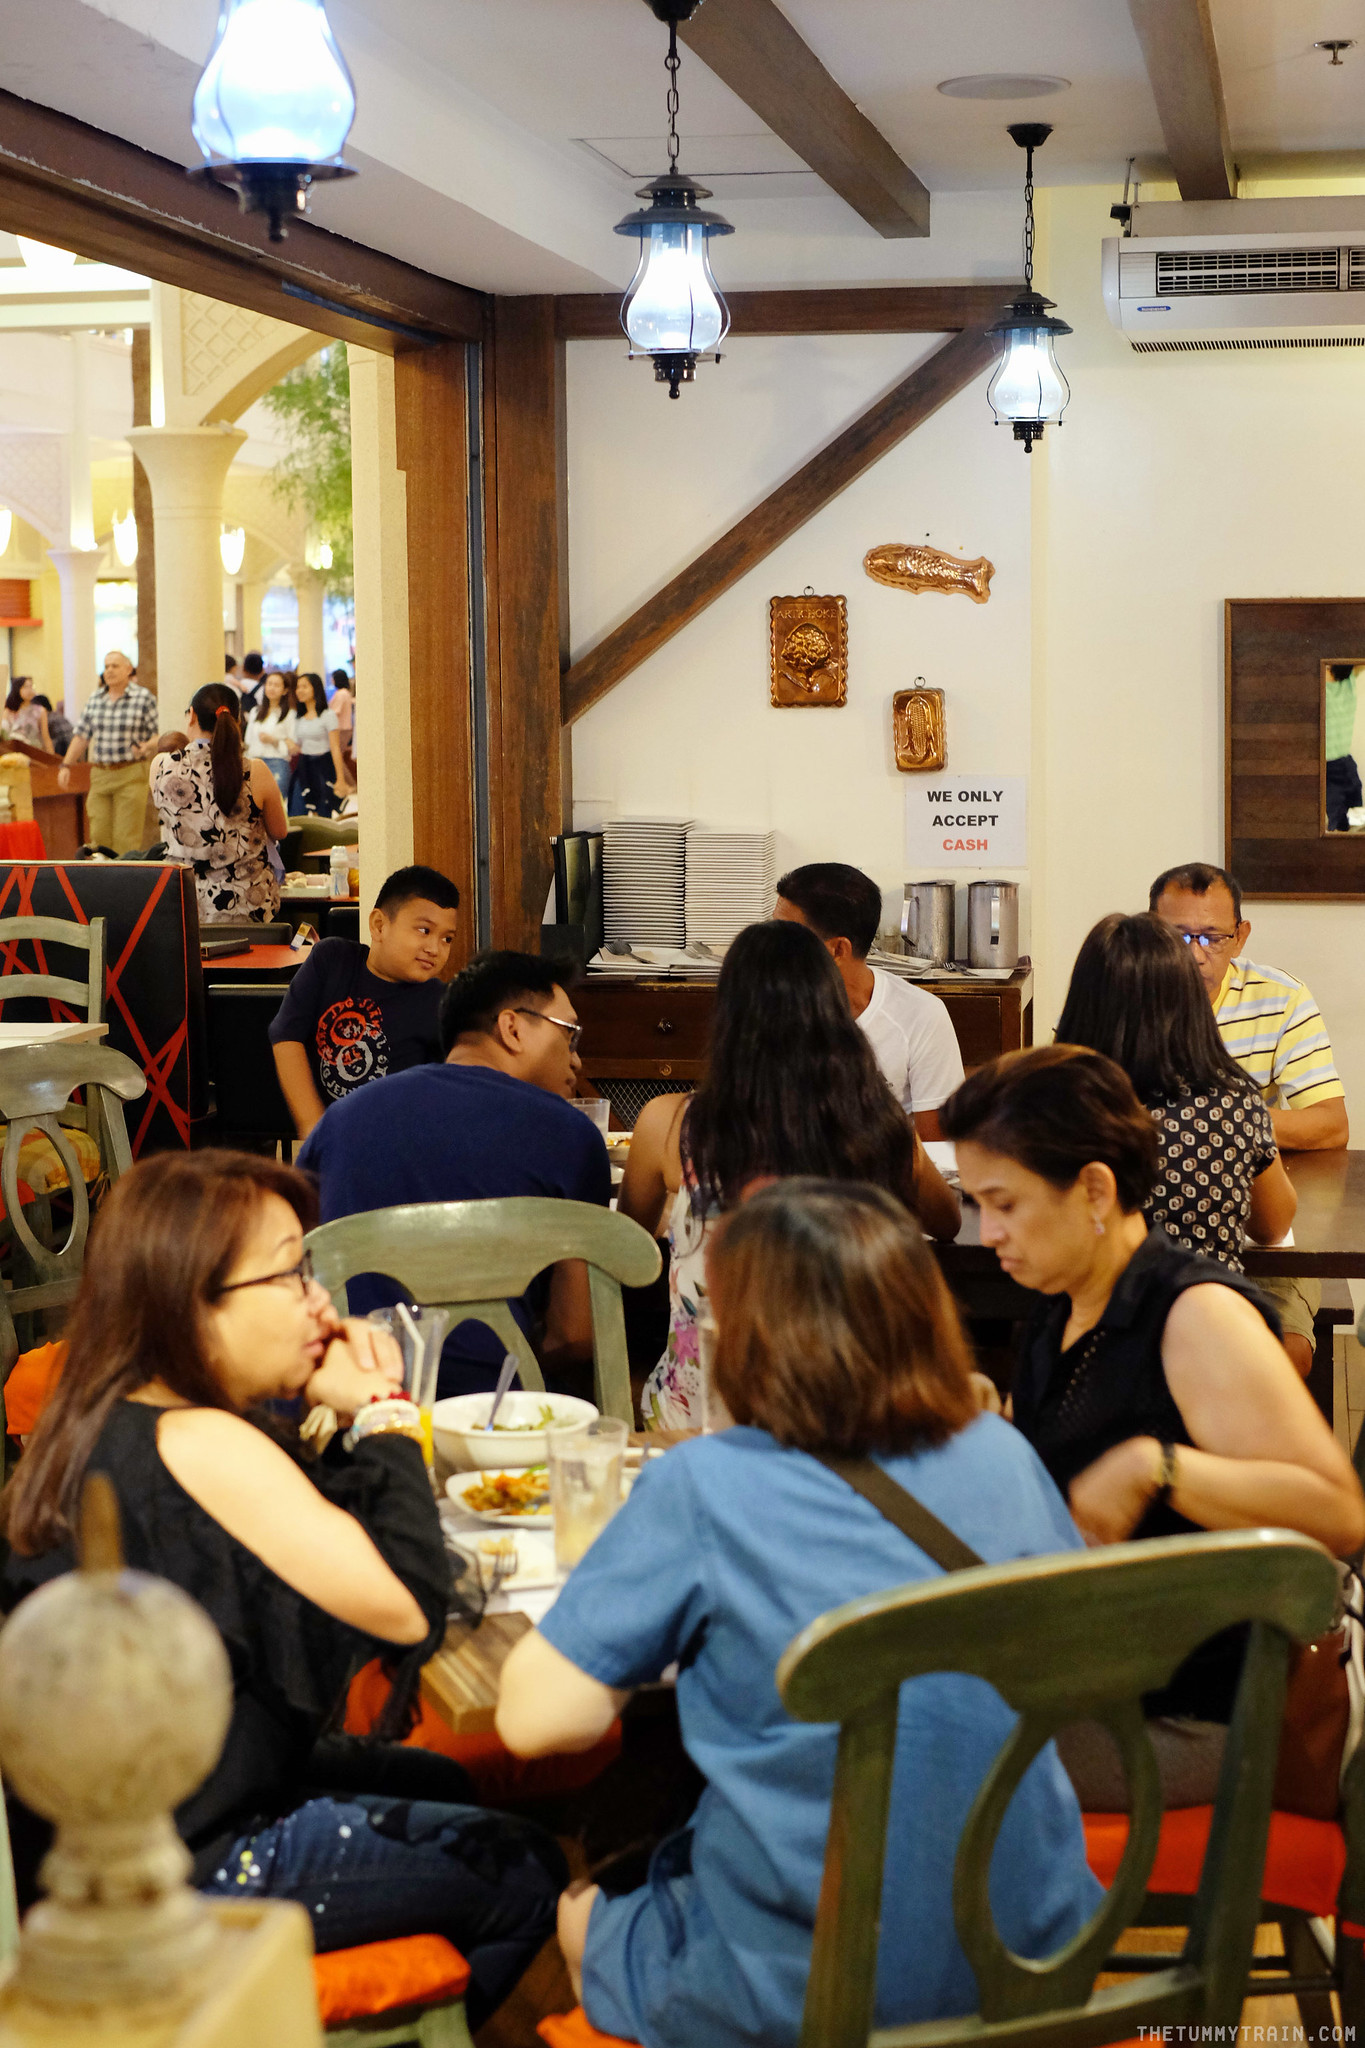 33336832022 4b28acaac3 k - Have an affordable home-cooked Pinoy meal at Wooden Spoon